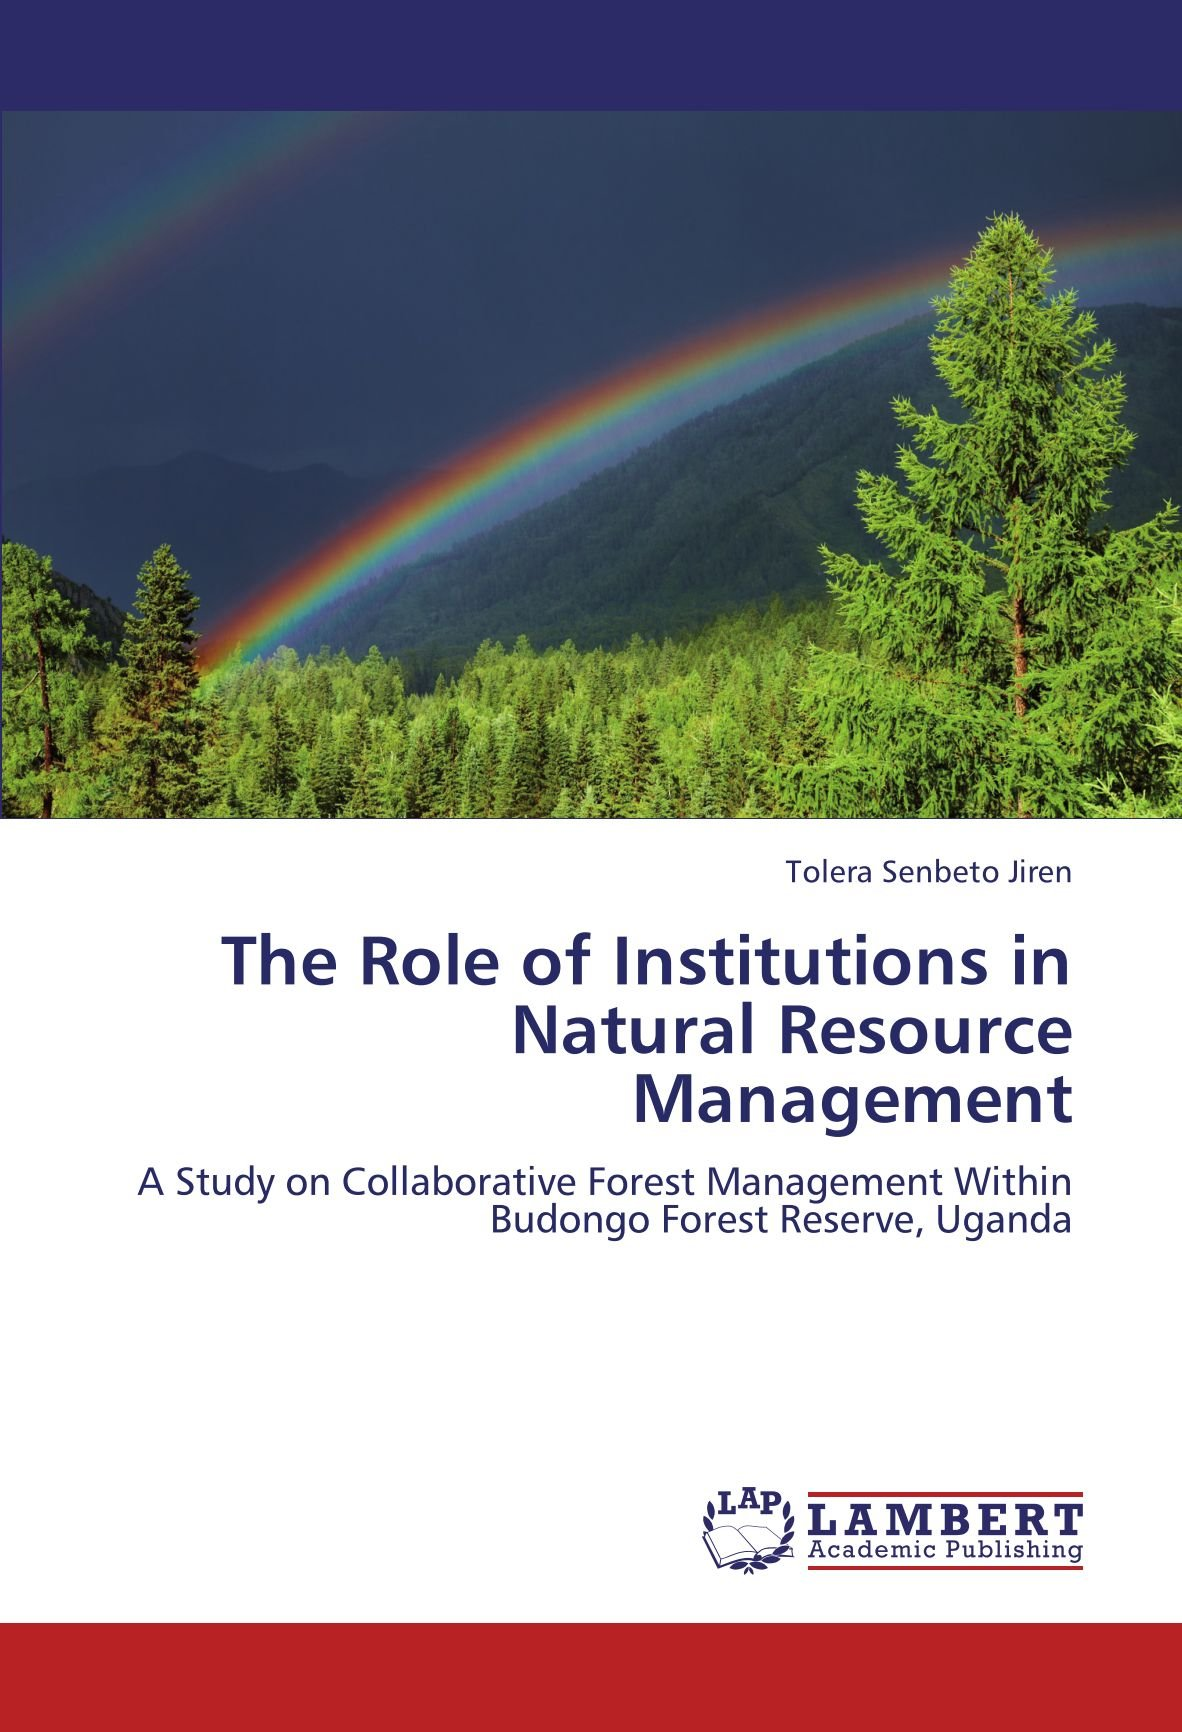 The Role of Institutions in Natural Resource Management: A Study on Collaborative Forest Management Within Budongo Forest Reserve, Uganda pdf